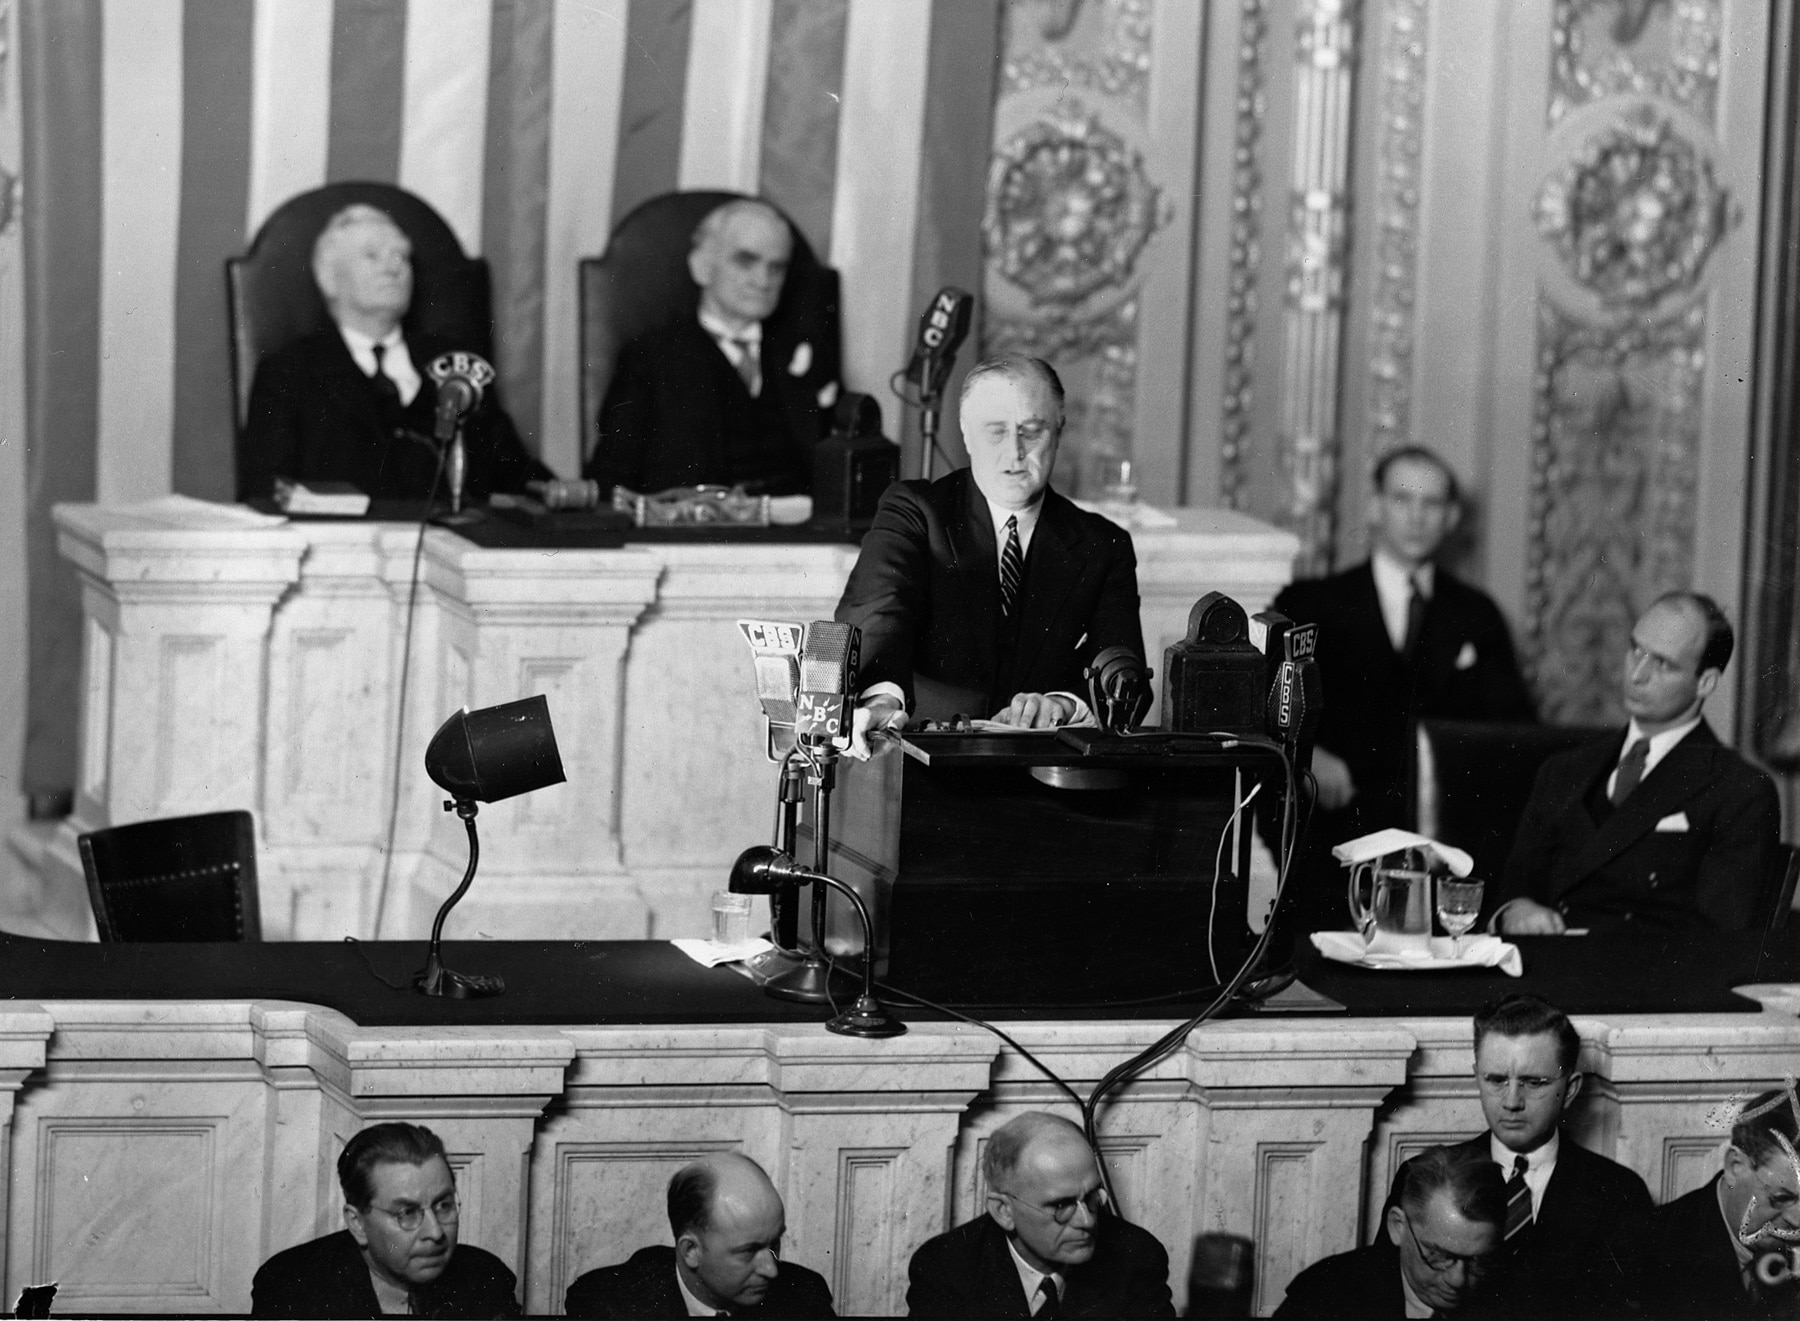 Franklin Roosevelt at lectern with officials seated around him (© AP Images)